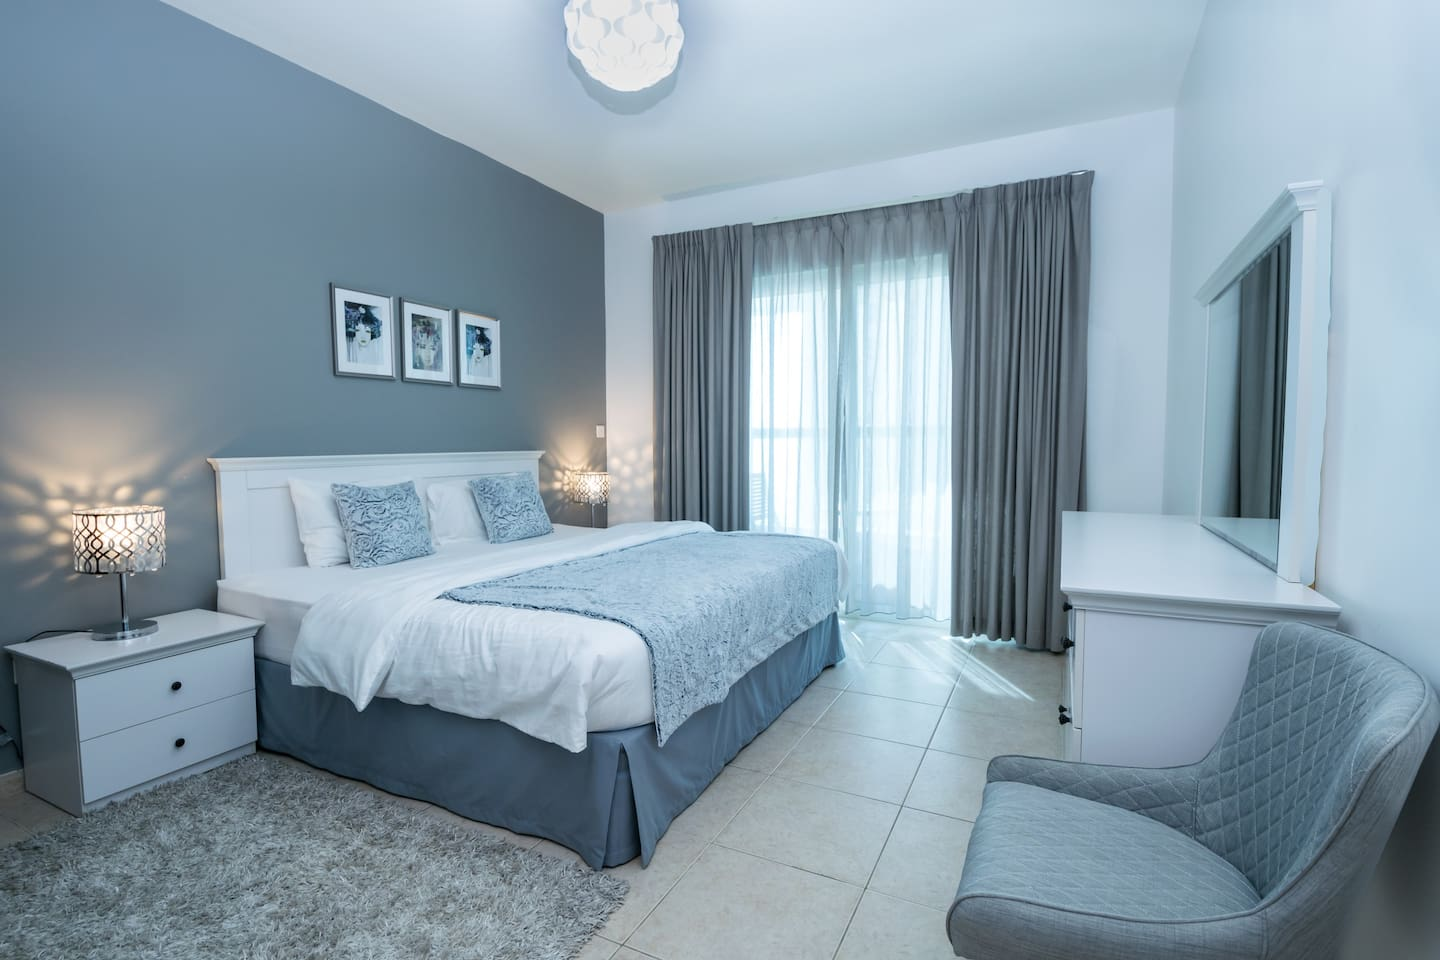 Master bedroom bathroom/shower, King size bed OR 2 single beds.